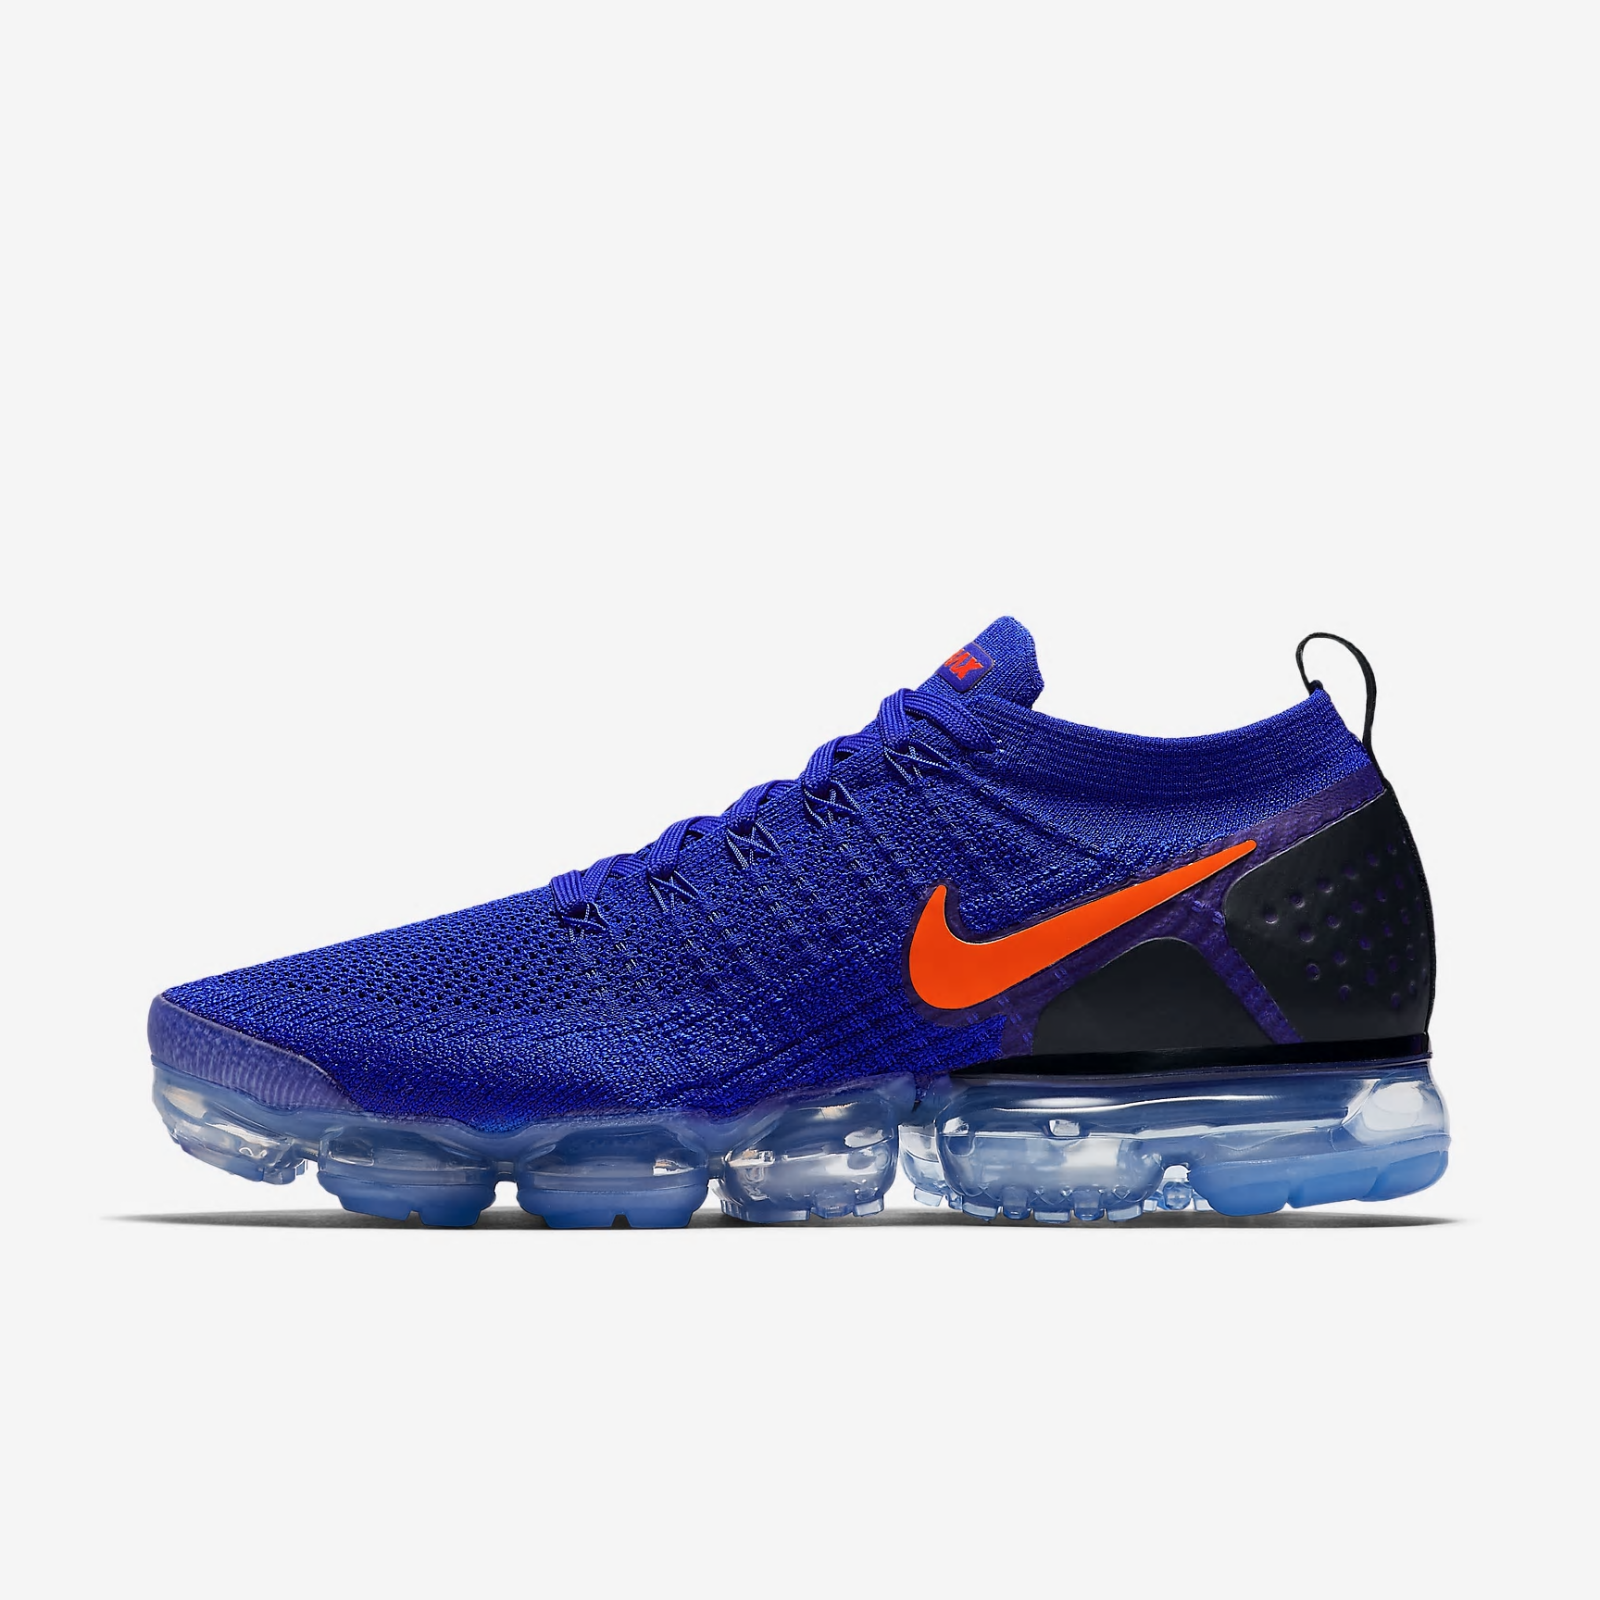 hot sale online 78782 7be19 Men s Authentic Nike Air Vapor Max Flyknit 2 and 50 similar items